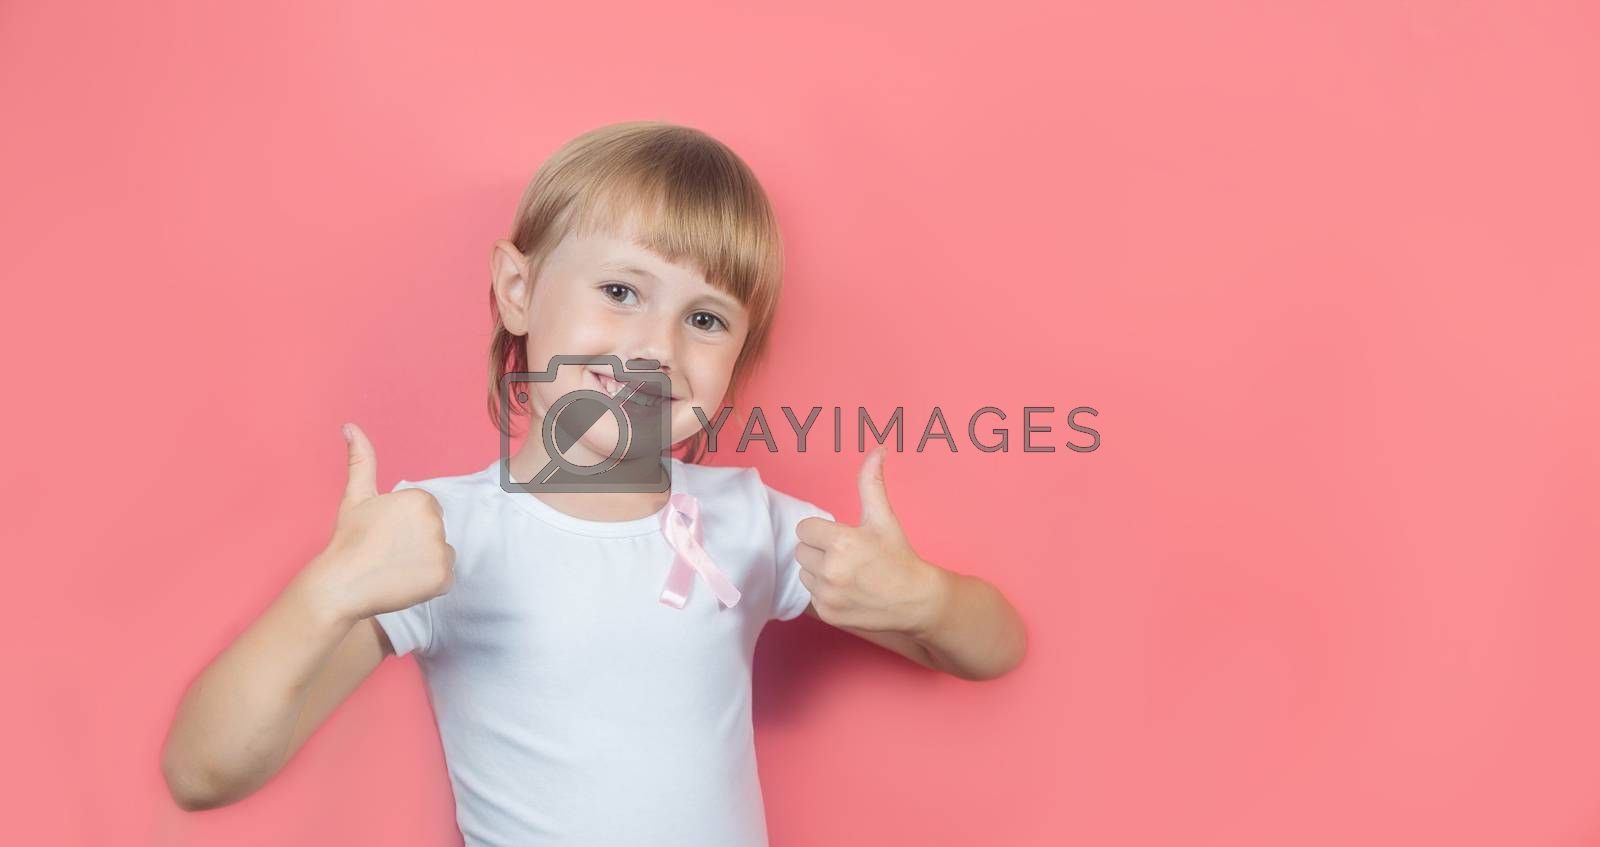 .Little girl showing two thumbs up in white t-shirt and with pink breast cancer awareness ribbon